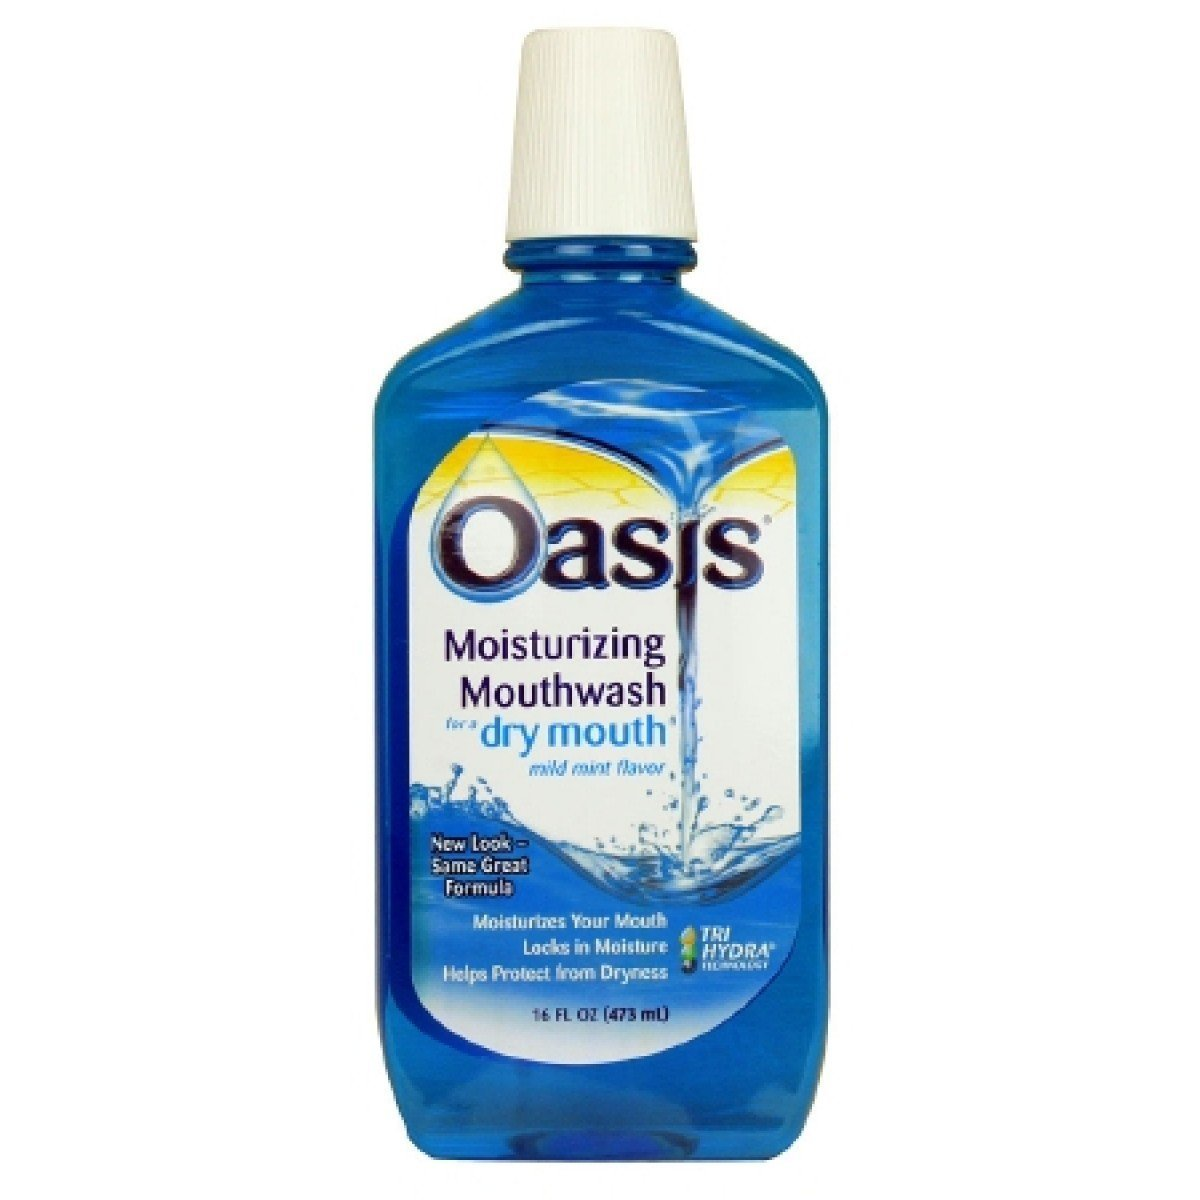 Oasis Moisturizing Mouthwash, Mild Mint 16 oz by Oasis (Pack of 4)